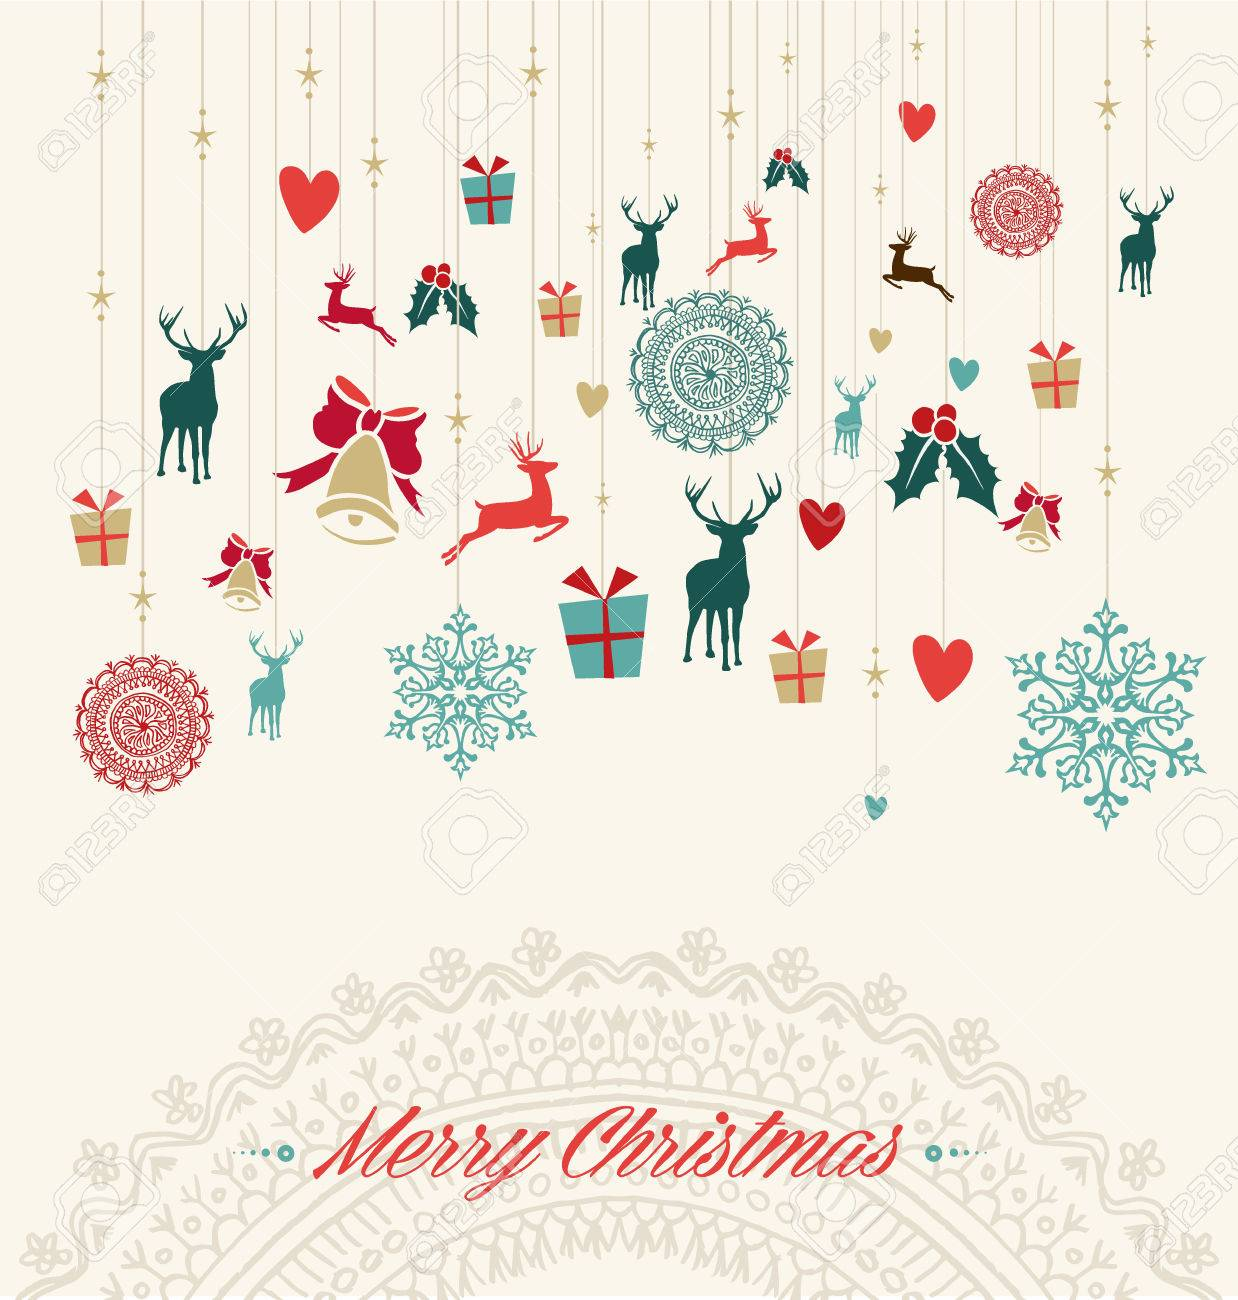 Merry Christmas Holiday Vintage Hanging Elements Greeting Card. Vector File  Organized In Layers For Easy